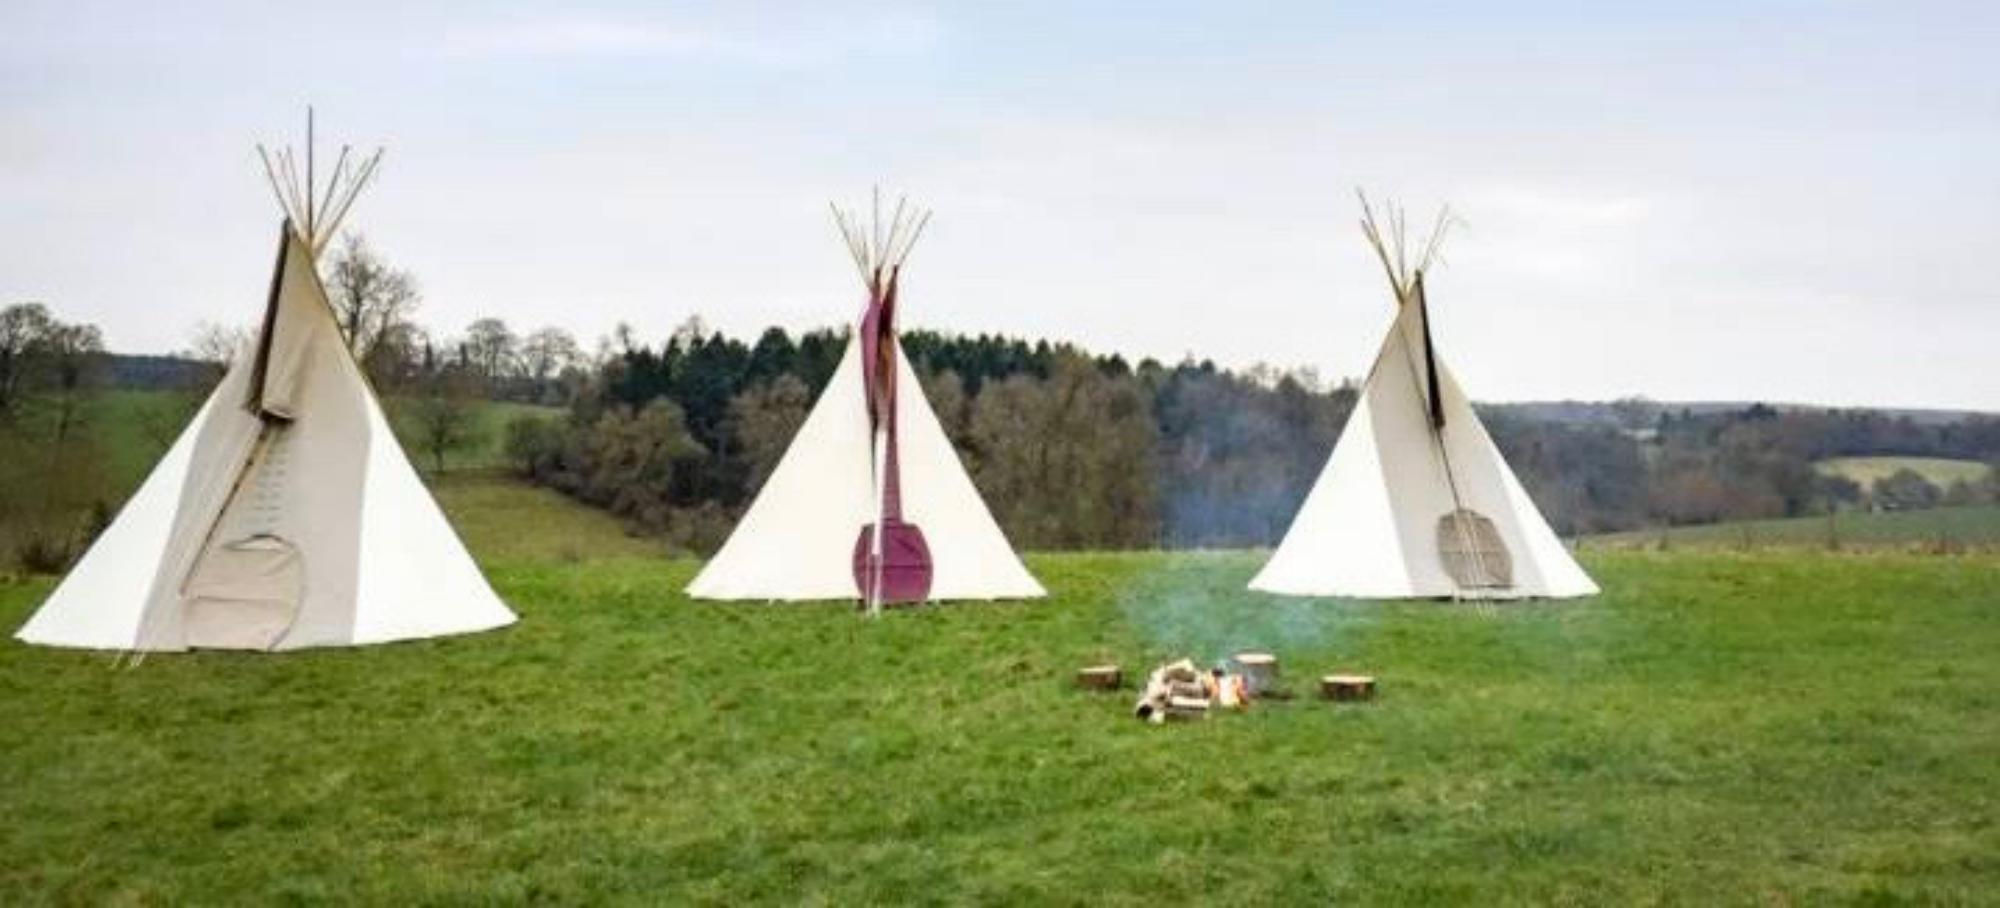 Campsites in South East England – Glampingly